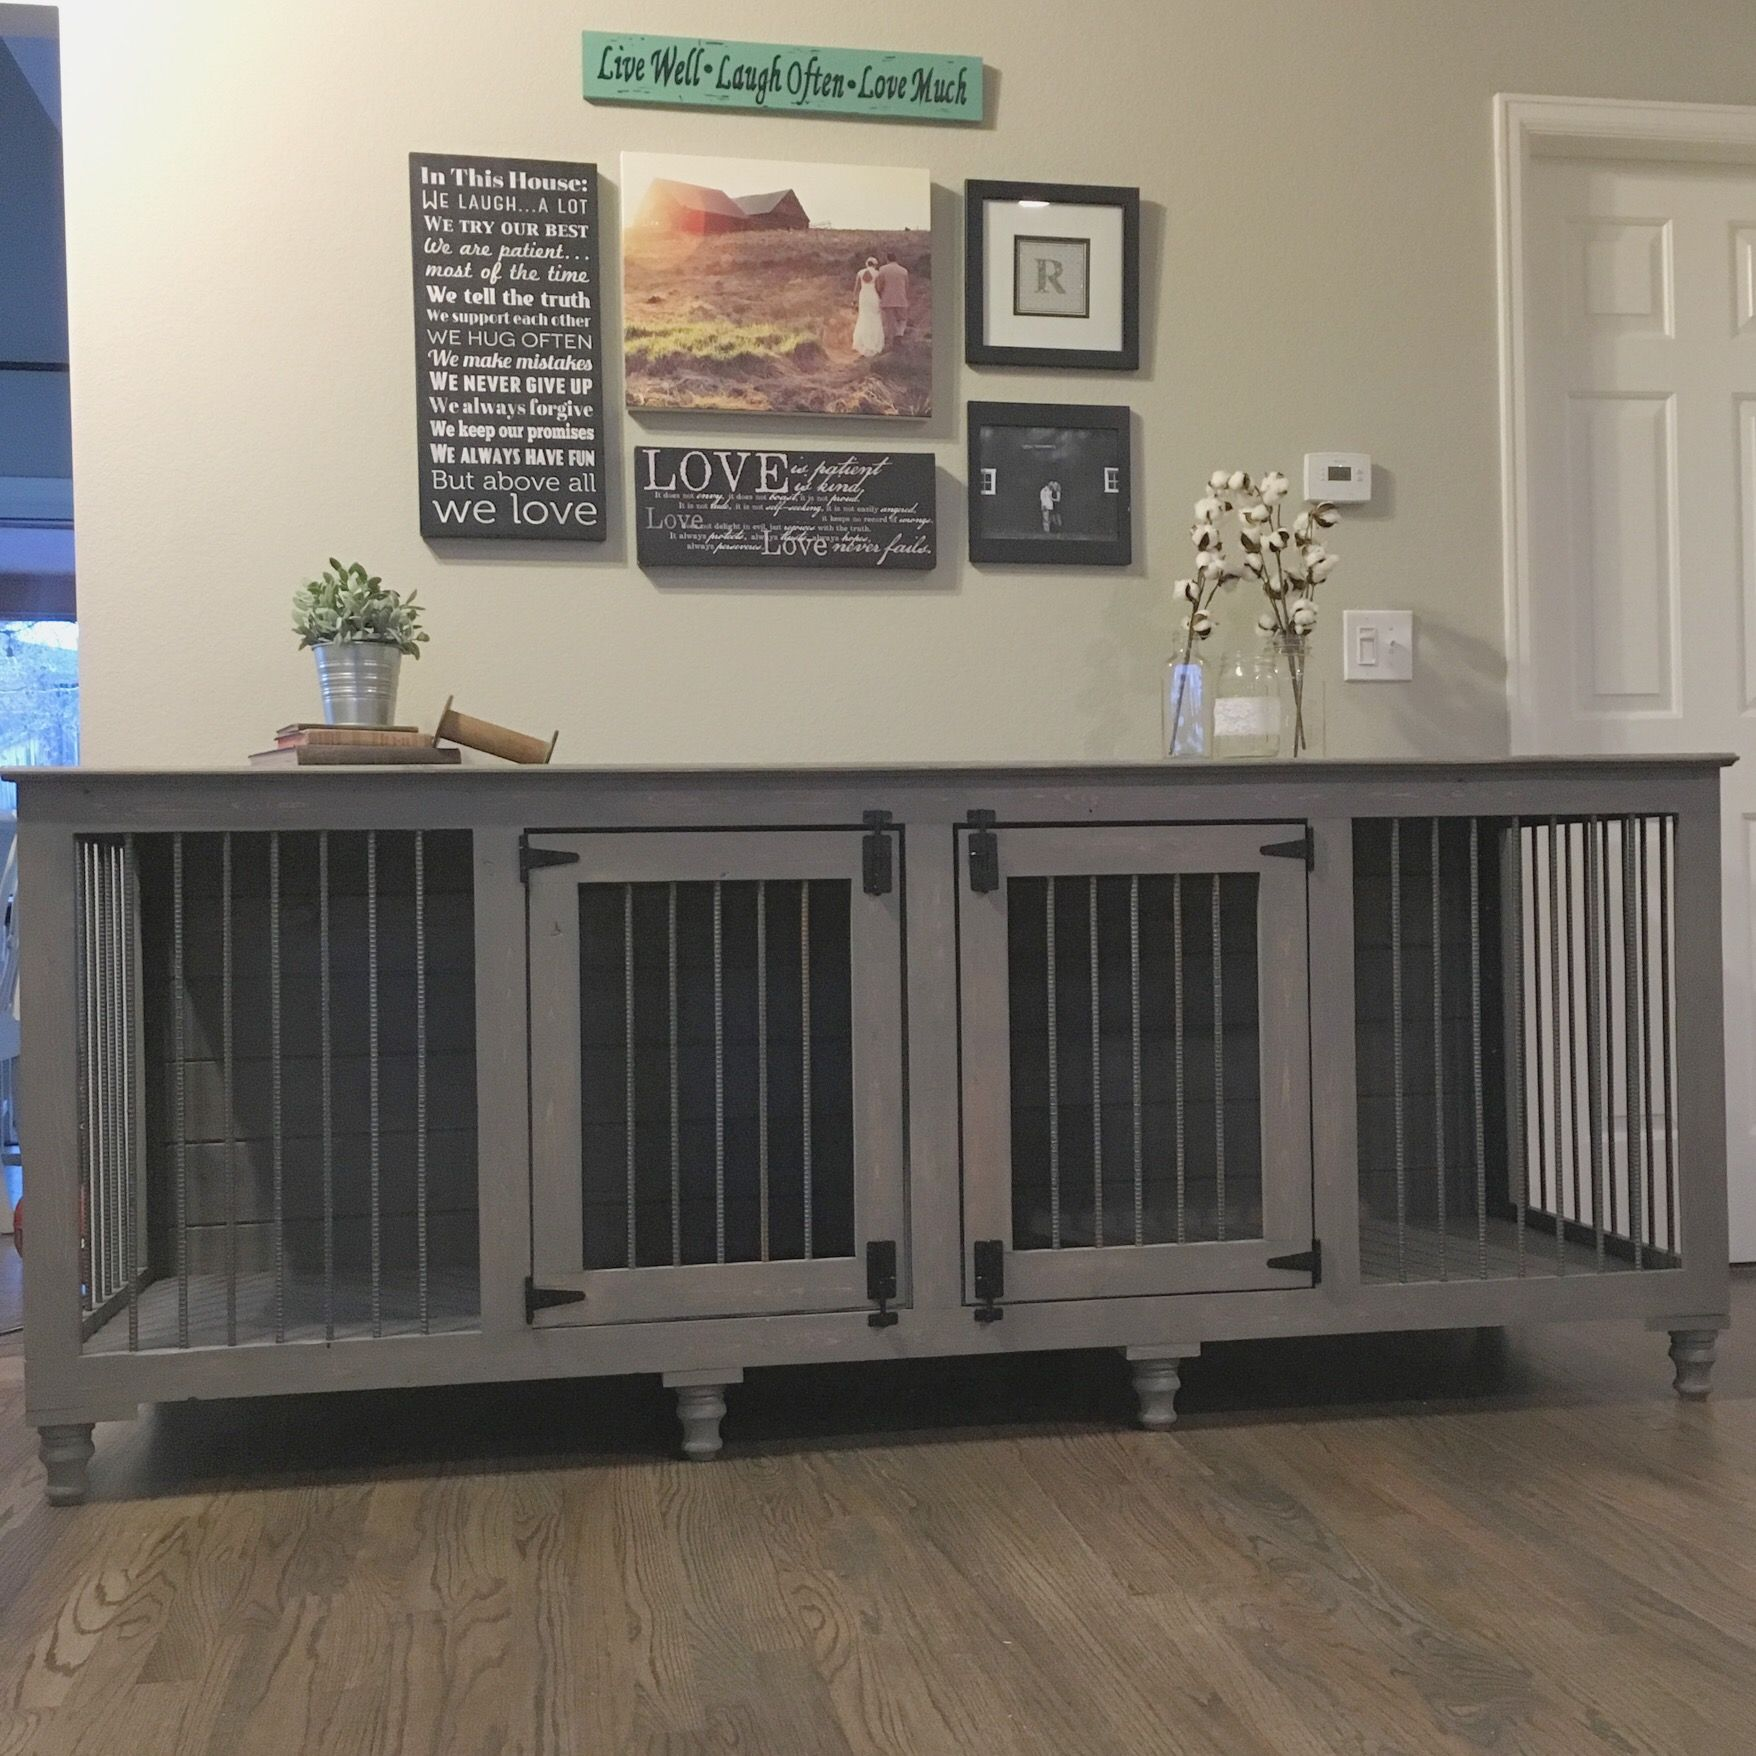 wood dog crates furniture. the first beautiful decorative indoor wooden dog kennel built for two dogs itu0027s more than a crate but truly inspiring furniture wood crates e